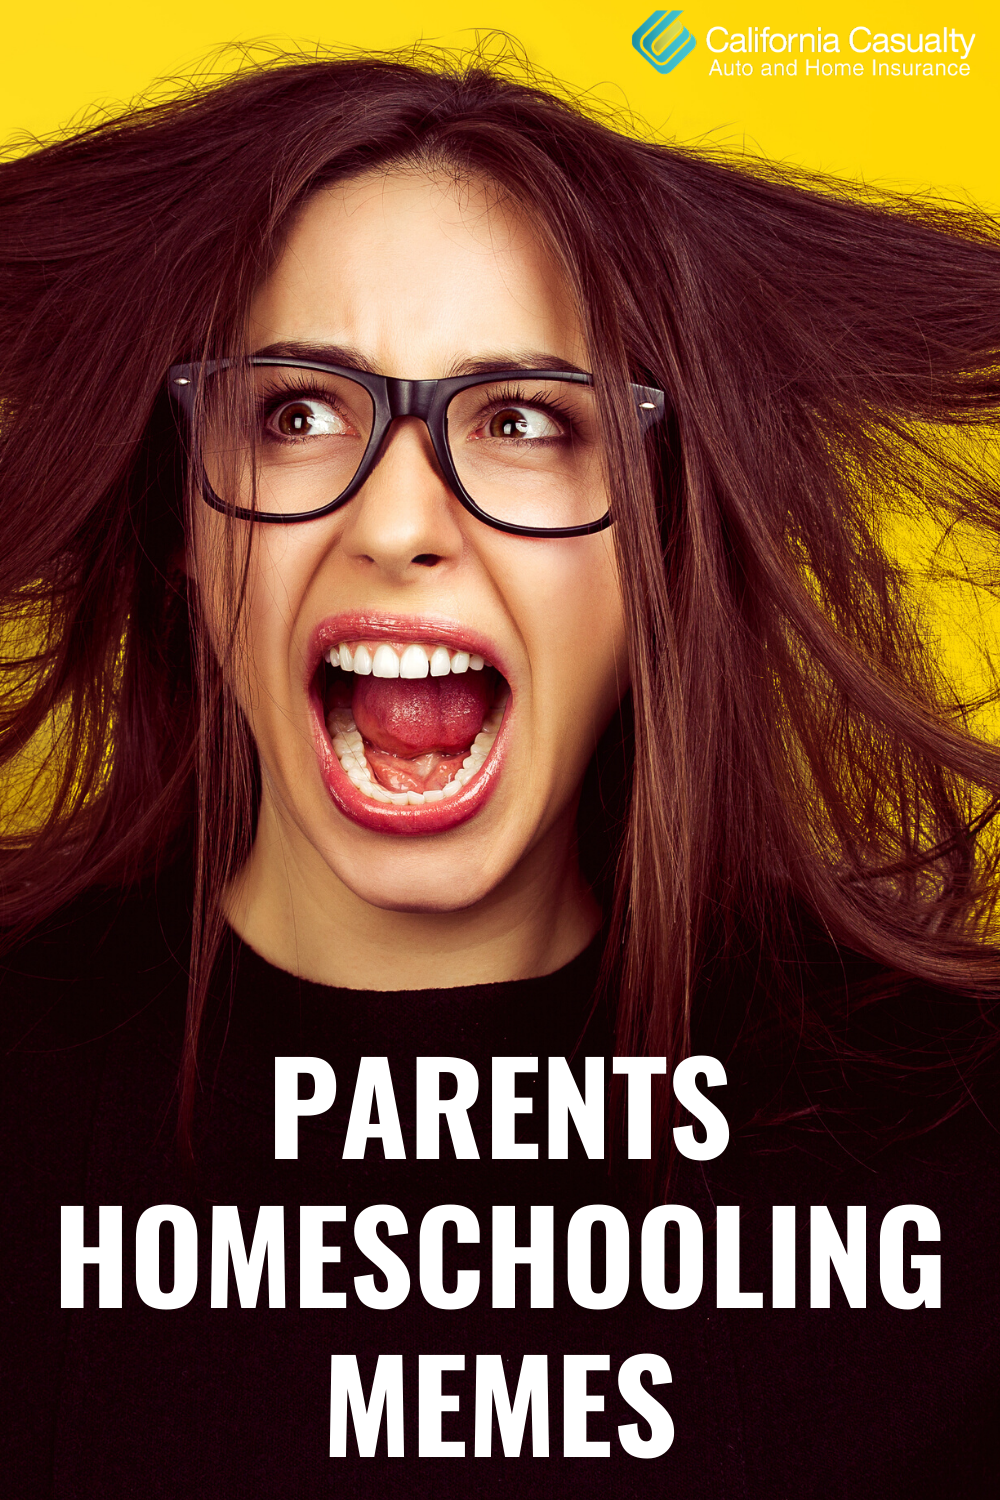 Memes From Parents Homeschooling Their Kids Teacher Memes Funny Homeschool Memes Teaching Memes